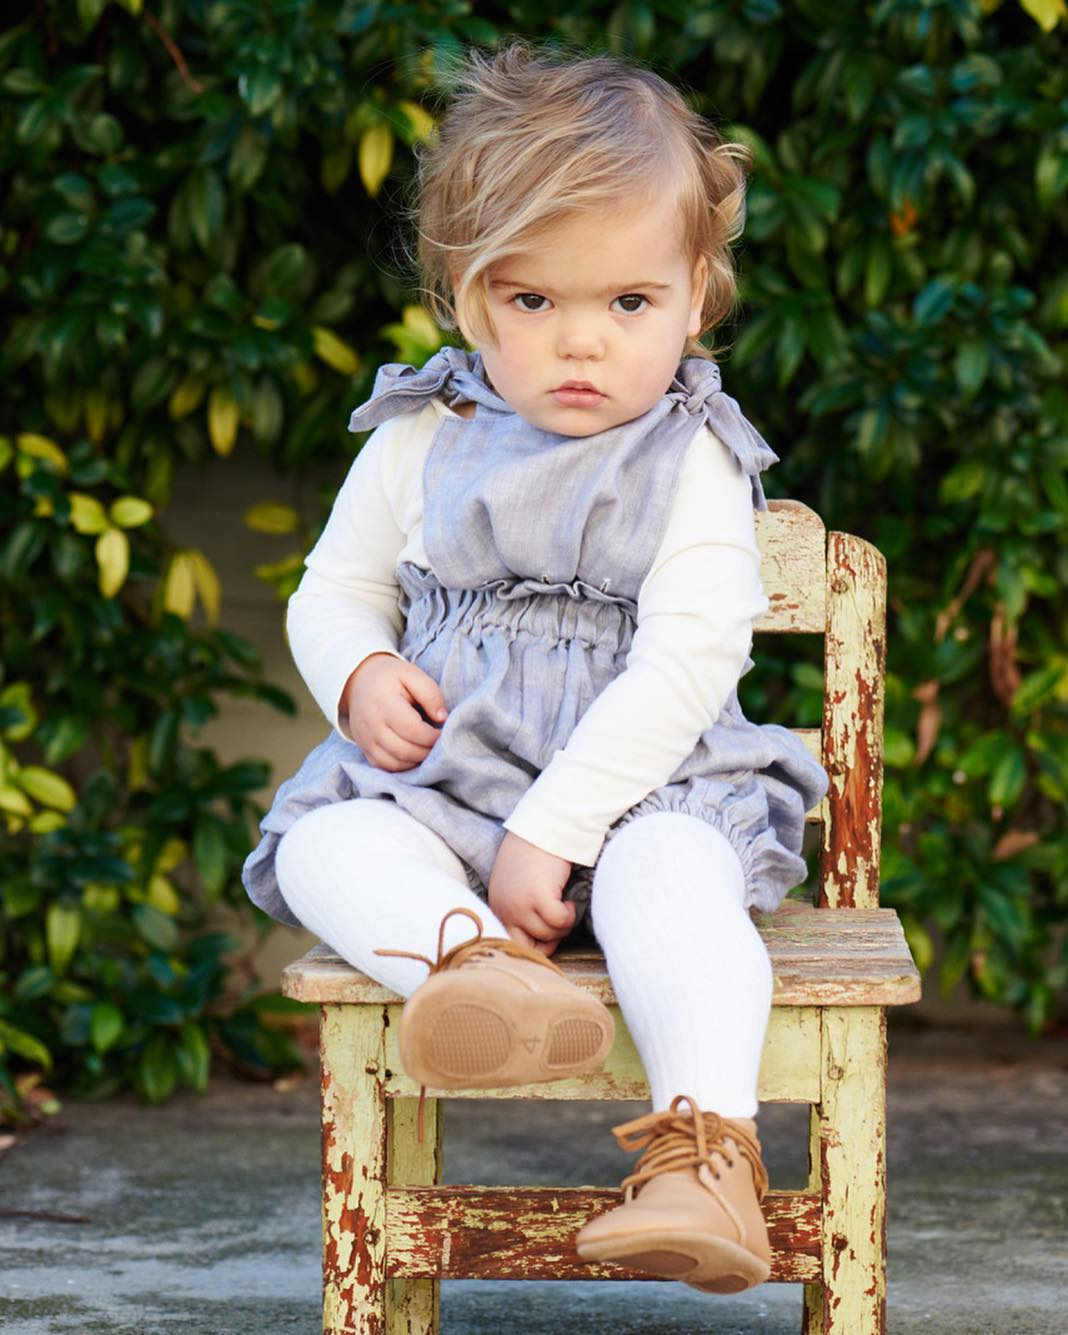 Quality_baby_shoes_for_children,_toddlers_and_babies._Soft_soles,_natural_leather _9598_width=480x480